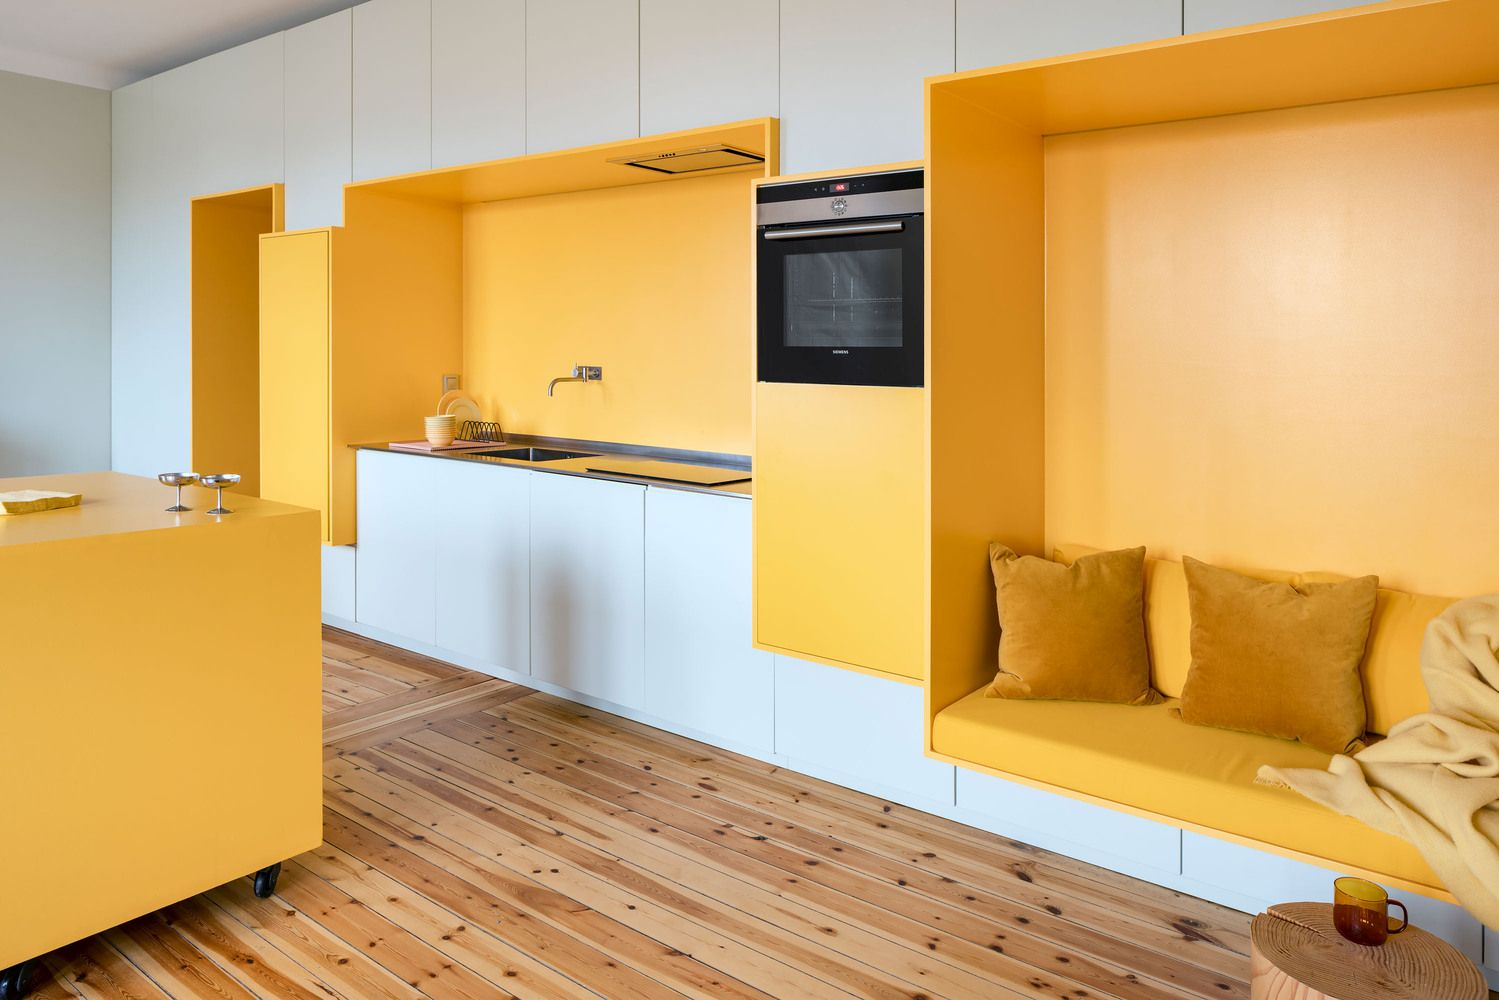 A yellow seat features an integrated kitchen unit and a comfy seat with pillows